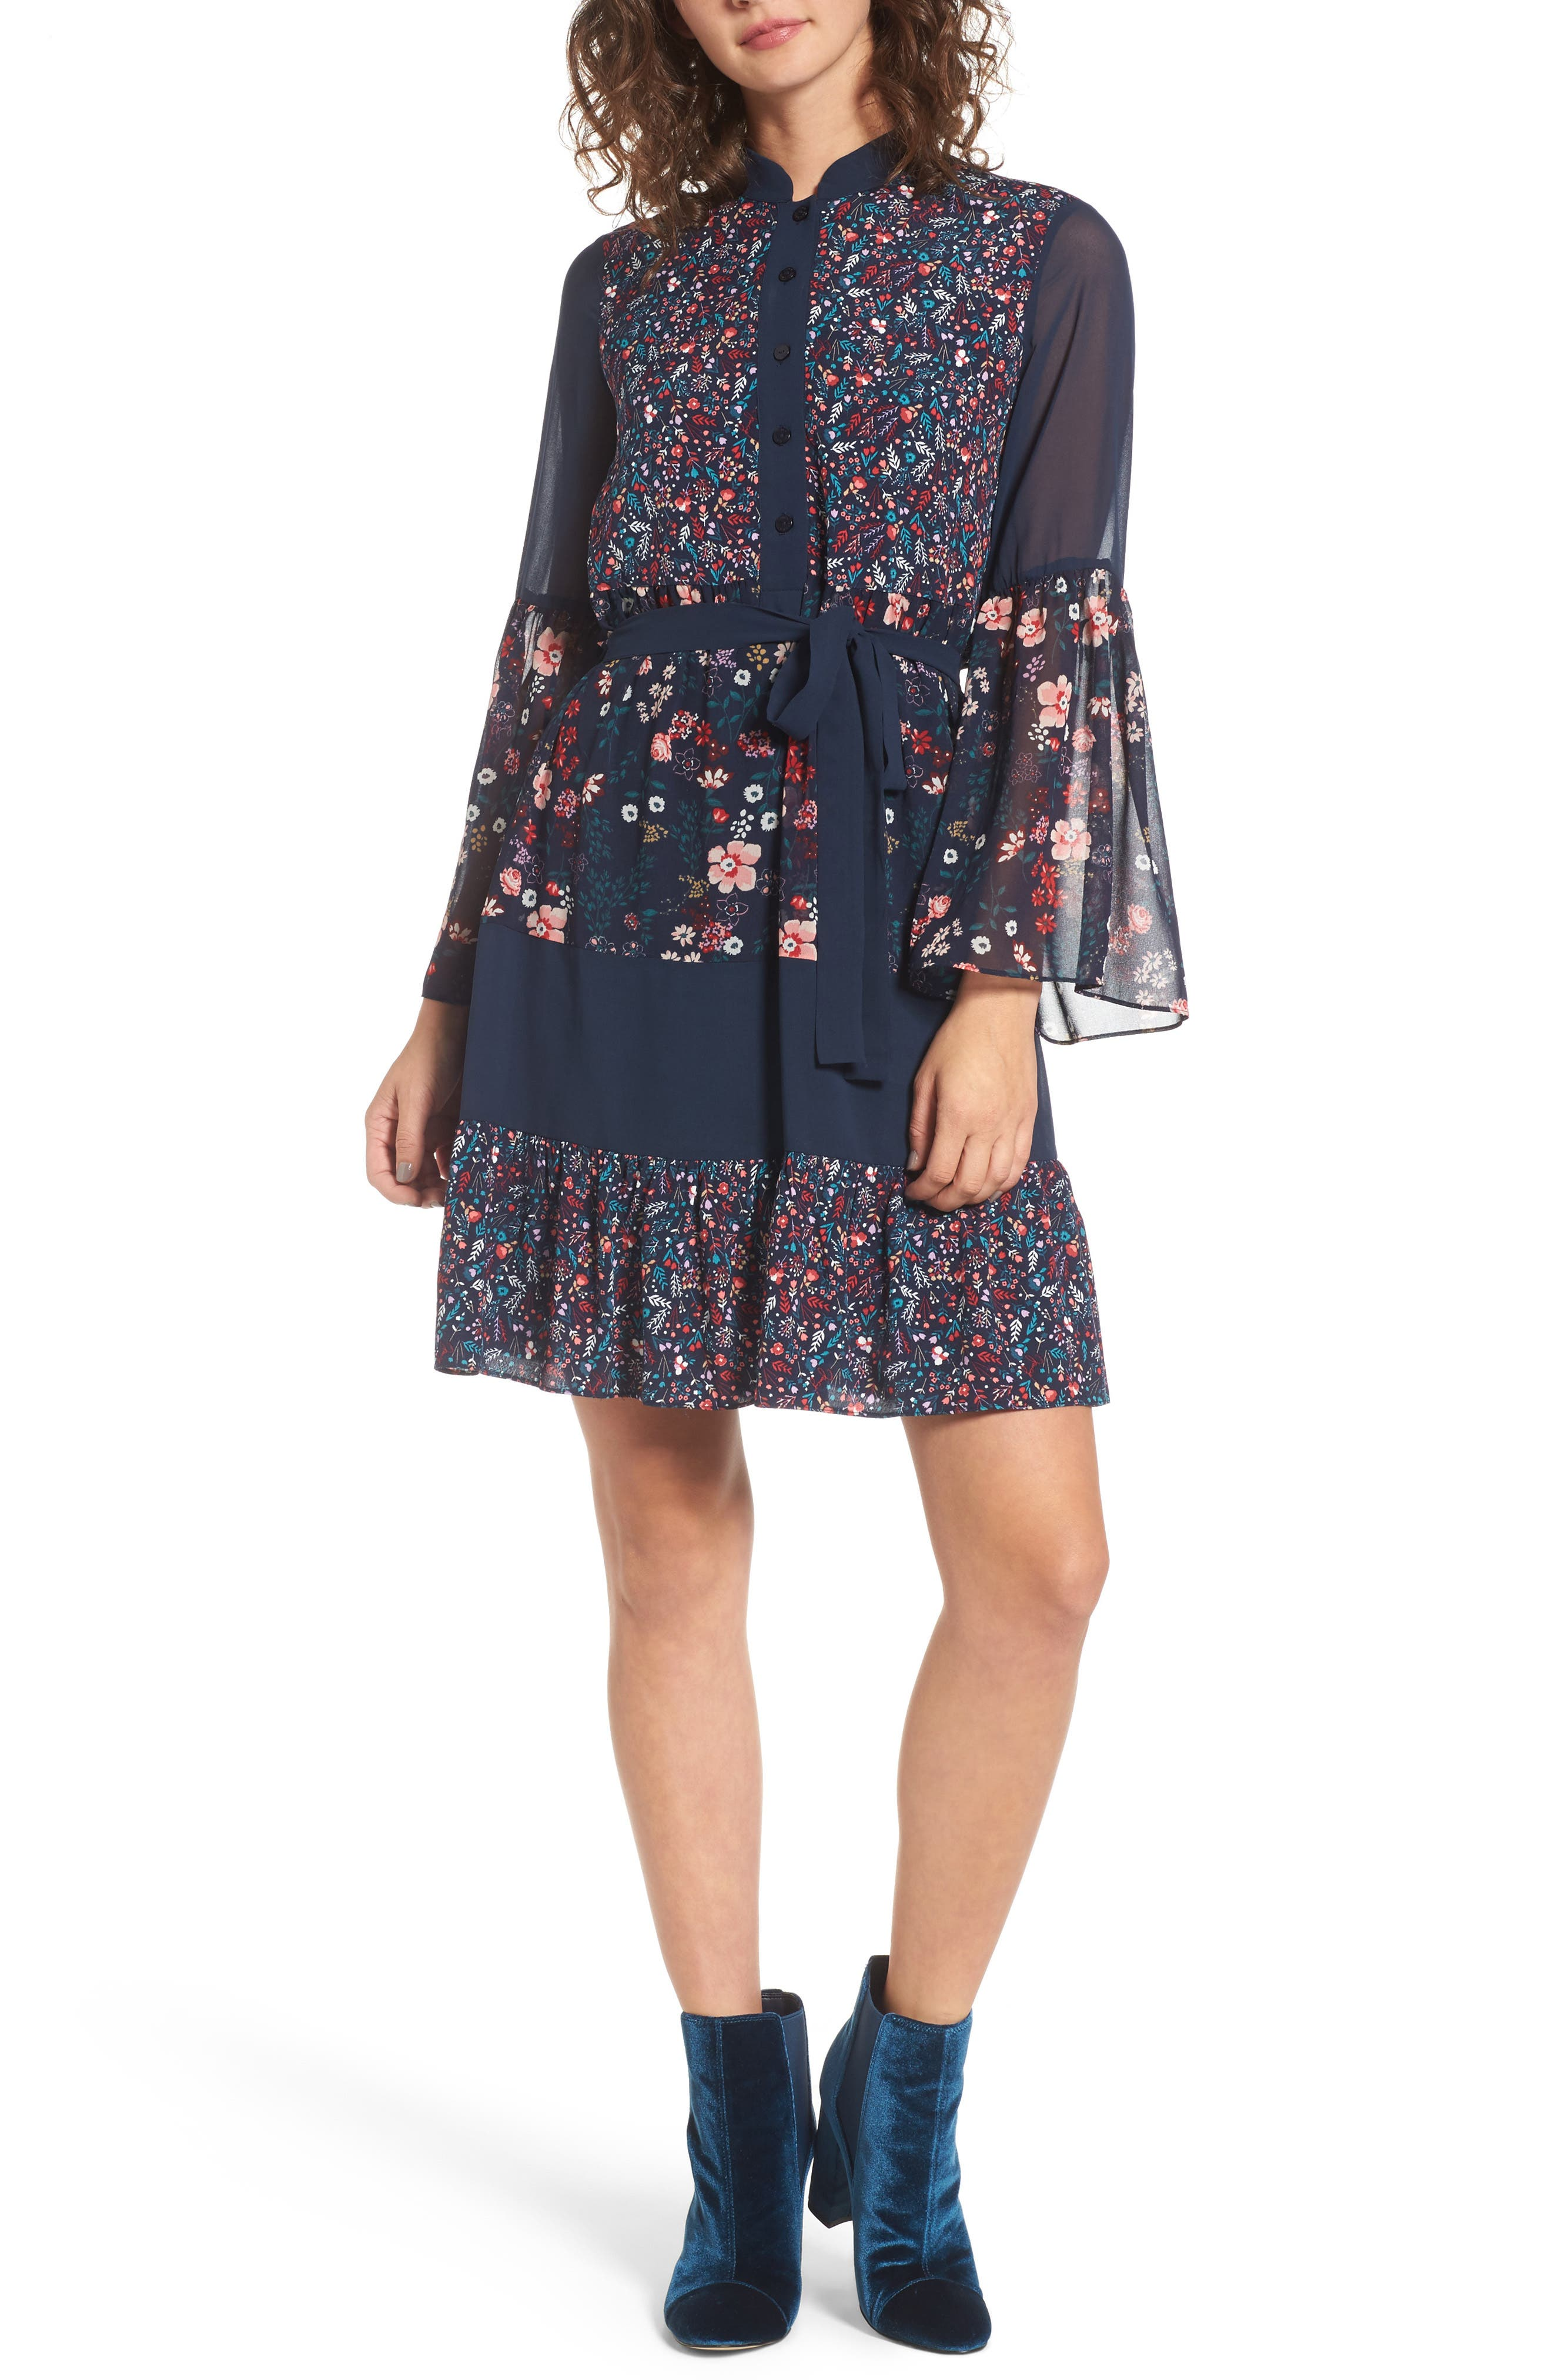 Alternate Image 1 Selected - Juicy Couture Caprice Floral Mix Shirtdress